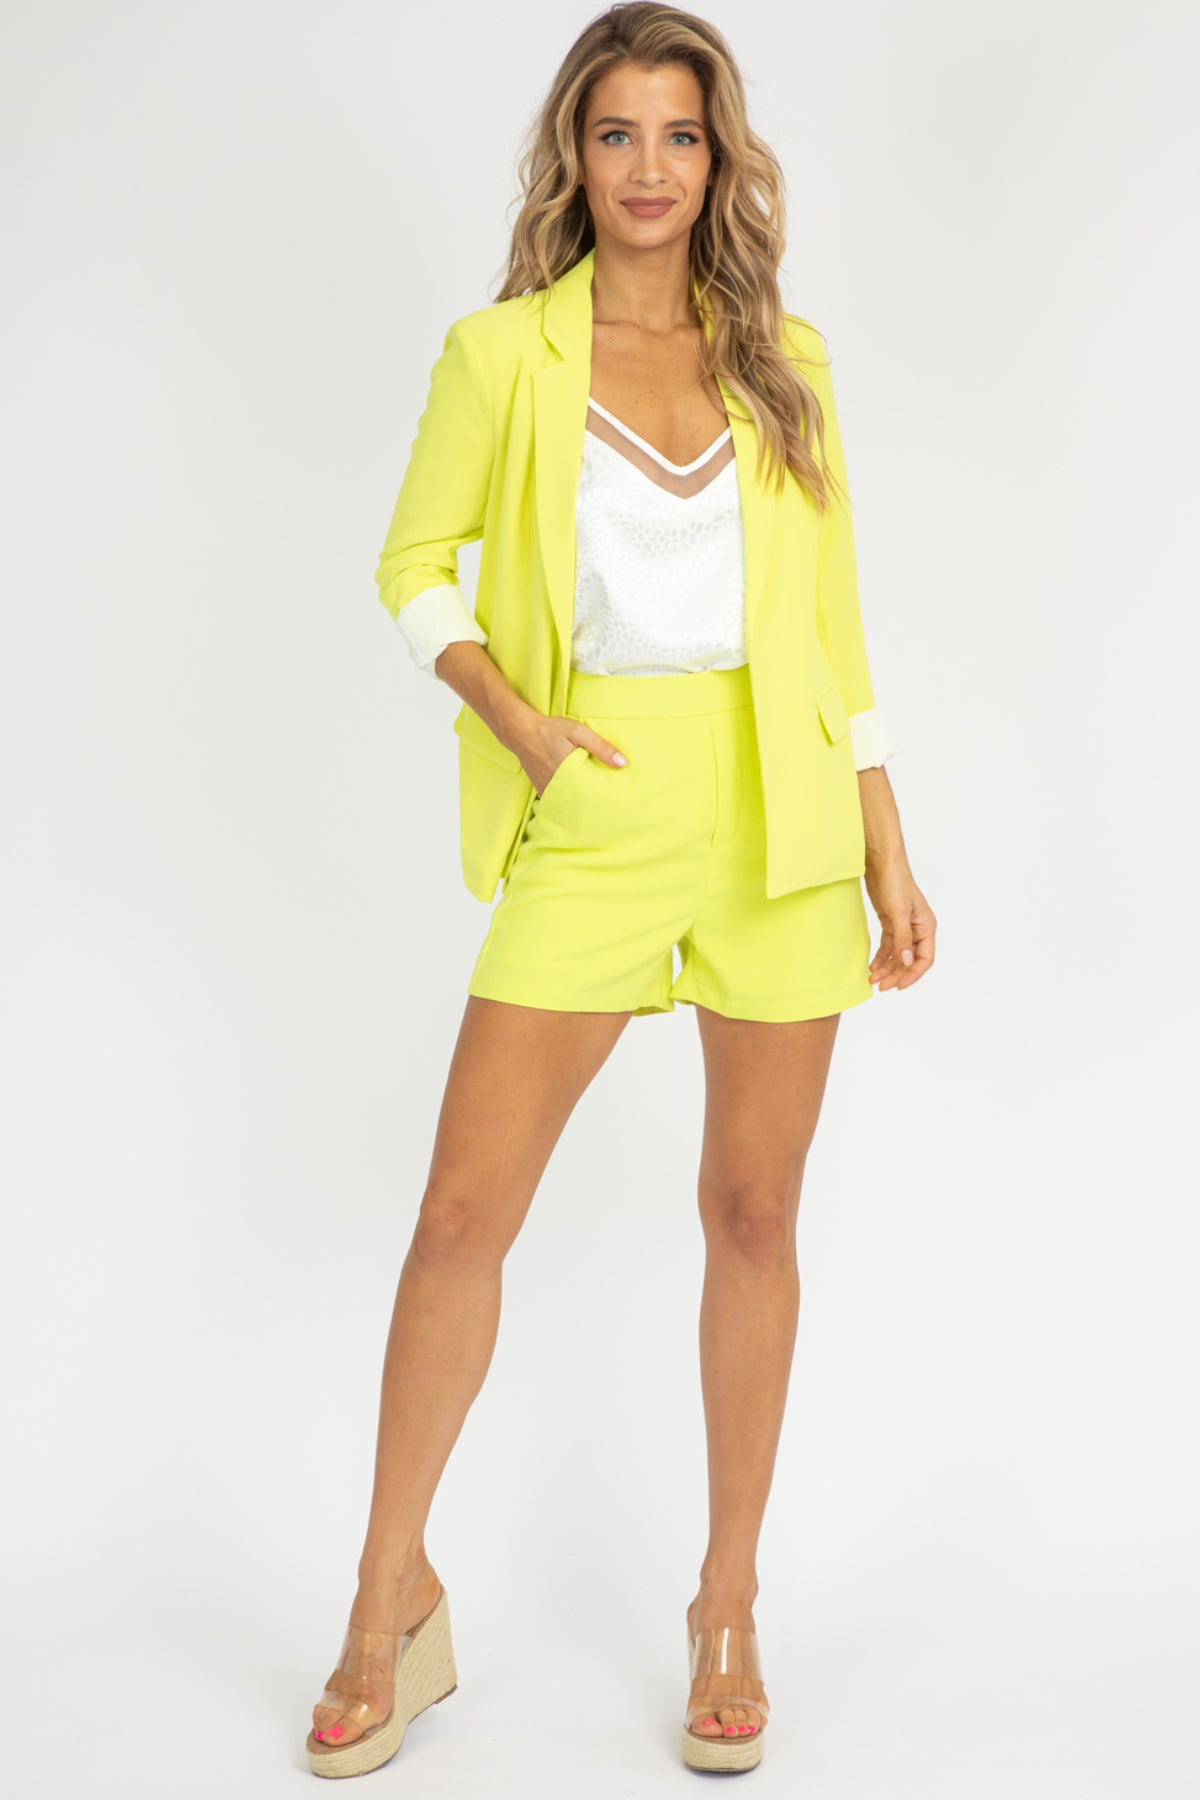 NEON LIME BLAZER SET